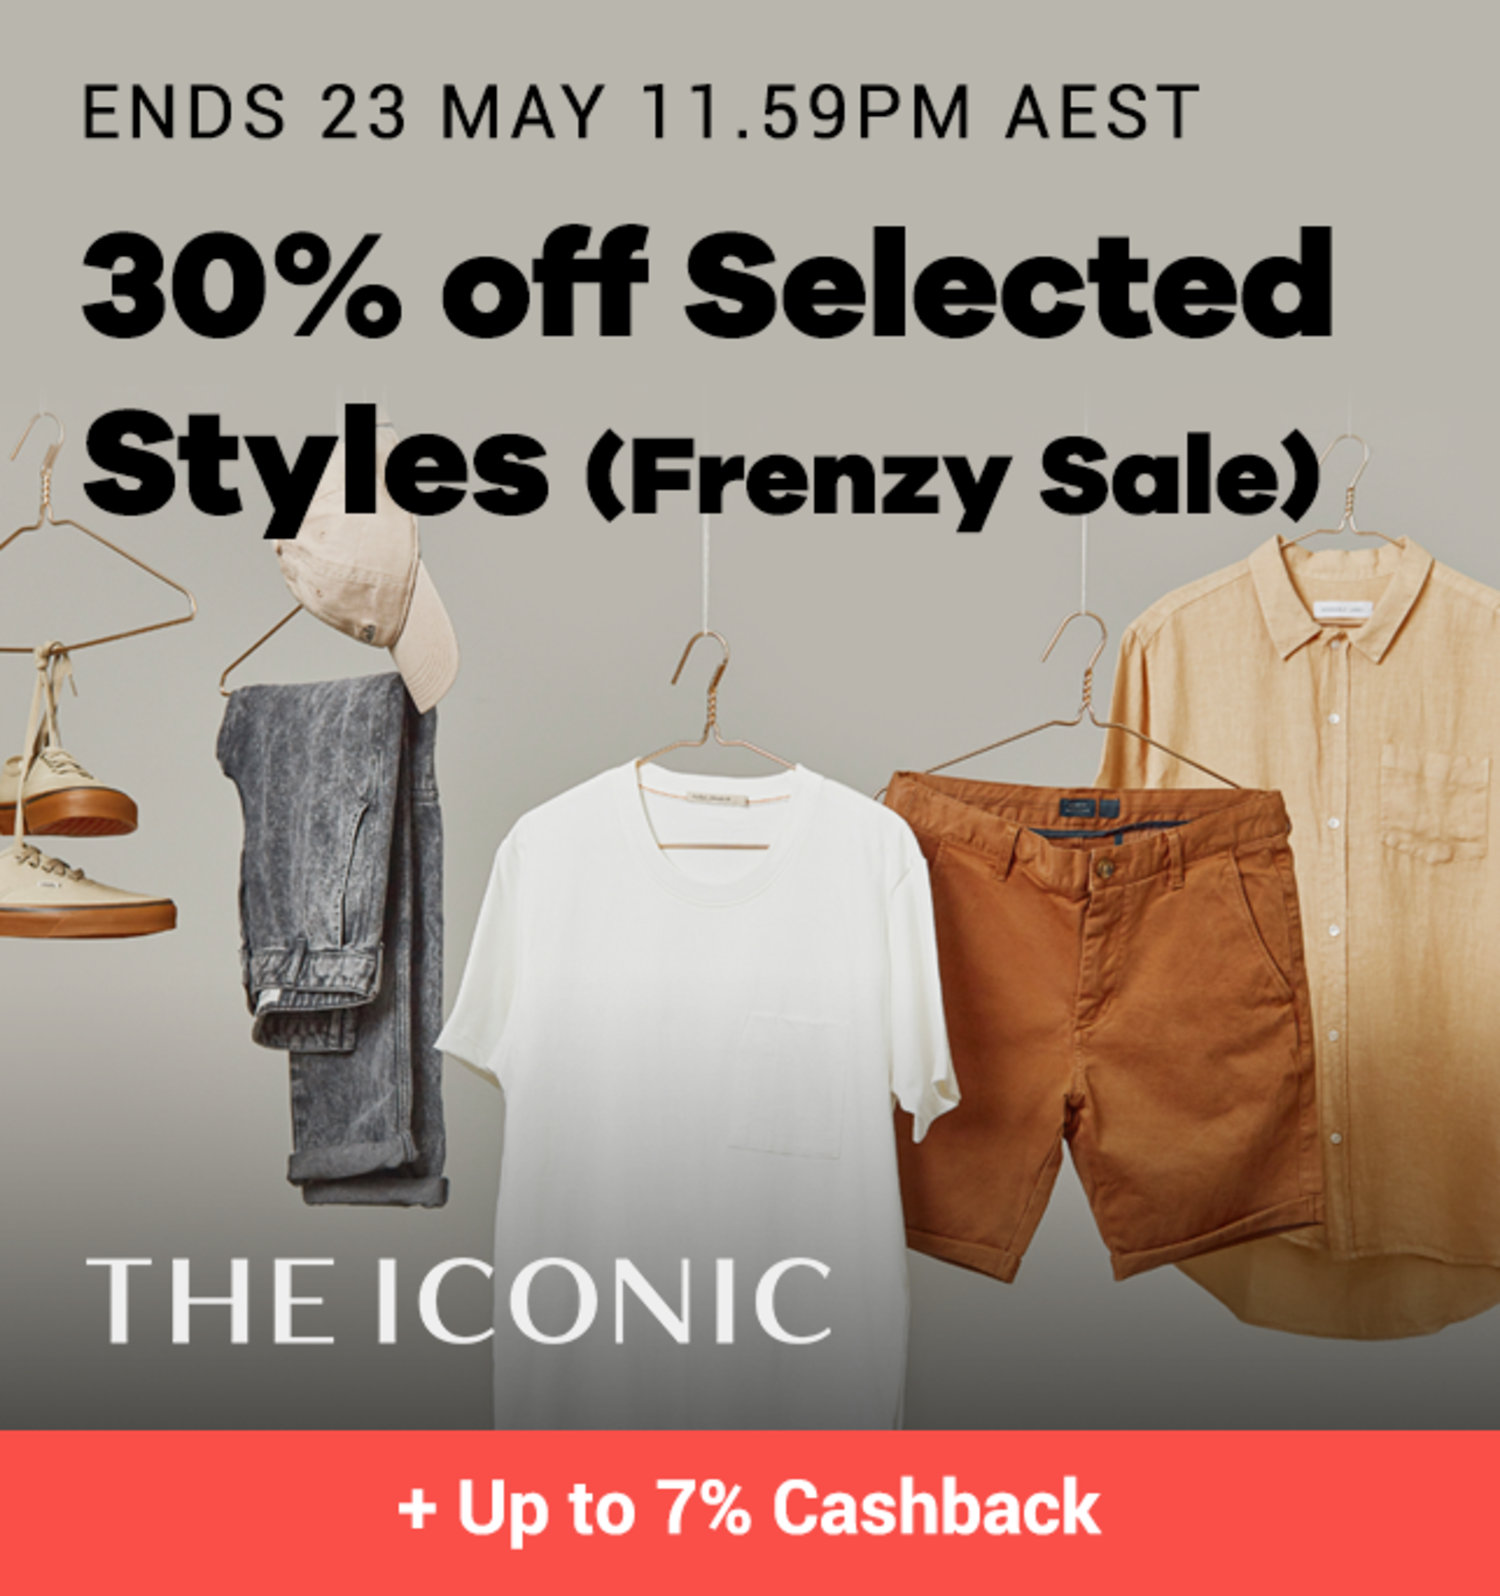 THE ICONIC - 30% off Selected Frenzy Styles